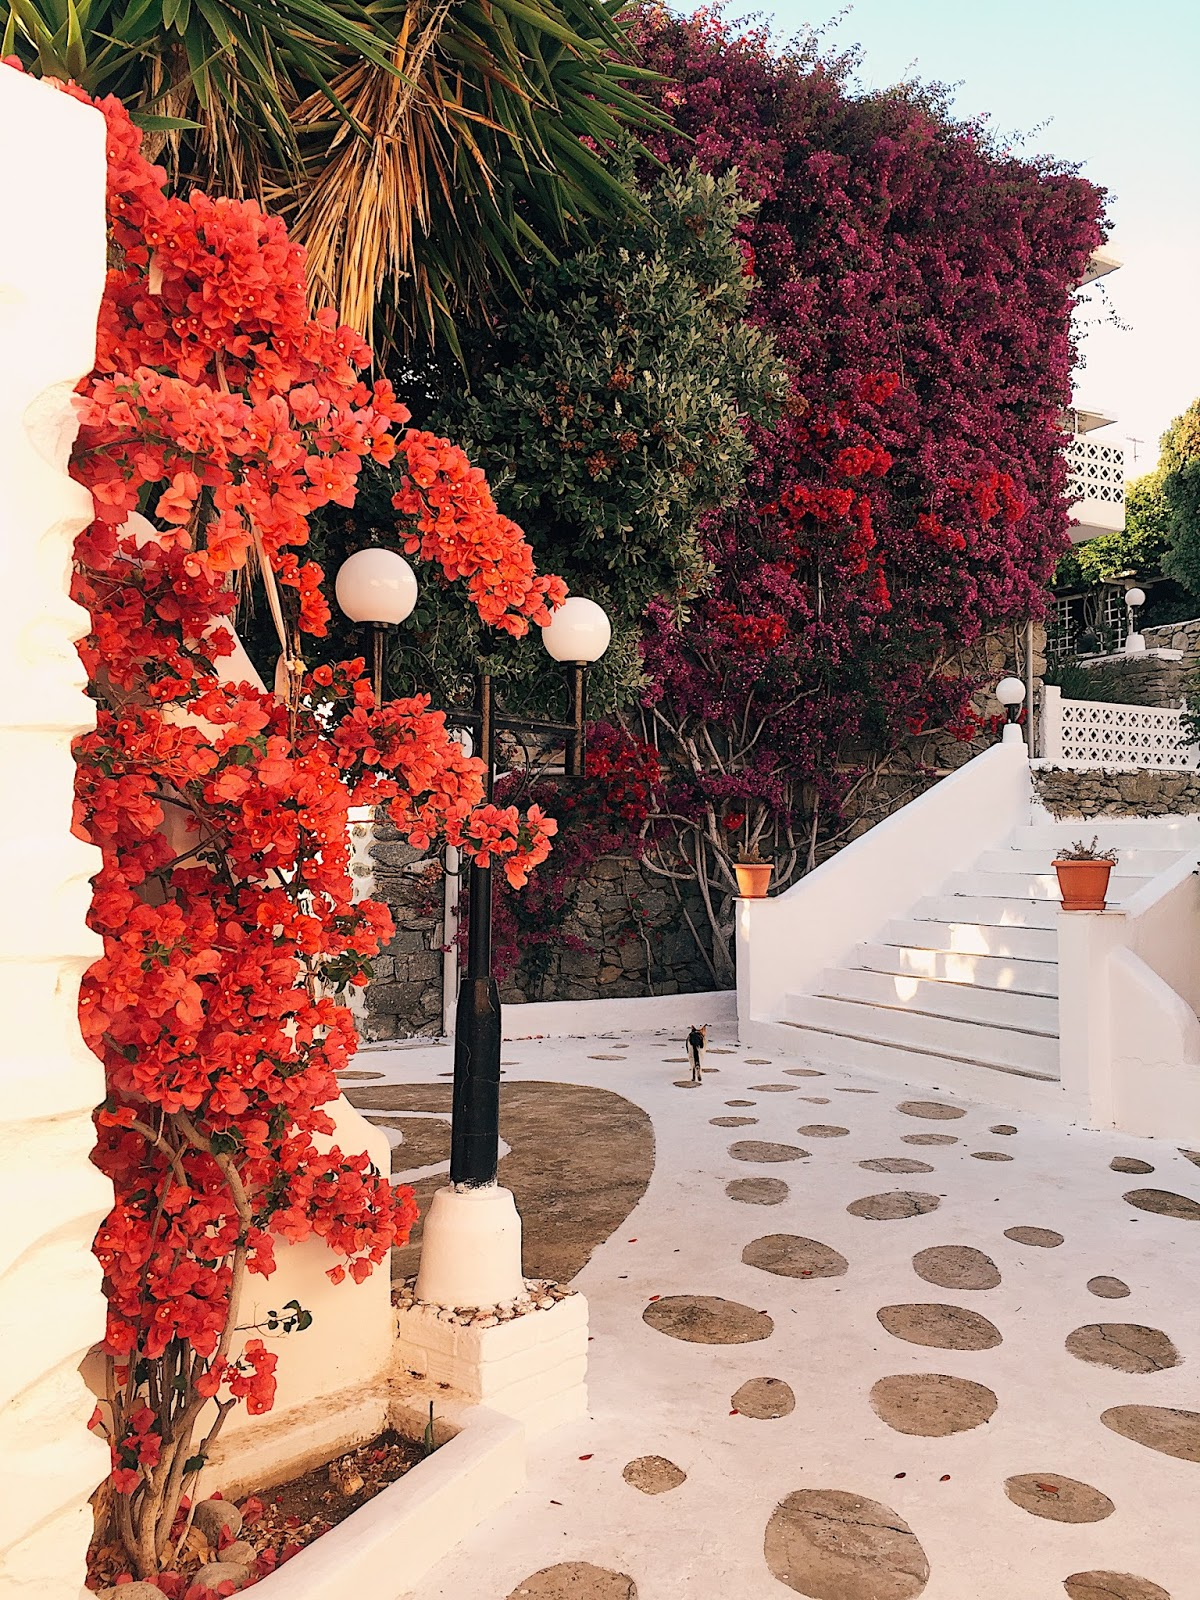 bougainvillea, bougainvillea mykonos, streets of mykonos, best city with bougainvillea, most famous bougainvillea, indian blog, indian blogger, top indian blog, indian luxury blog, uk blog, british blog, london blog, delhi blogger, delhi travel blogger, indian travel blog,  indian fashion blogger, top travel destination, top travel destination 2017, lonely planet recommend, travel to europe, europe travel info, summer holiday, where to go this summer, beach holiday, top beach destination, greece, greek holiday, greece travel, mykonos, mykonos travel guide, tips for mykonos, mykonos travel info, places to see in mykonos, places to eat in mykonos, best places for sunset mykonos, best views mykonos, prepare for greece travel, greece vacation, best beach mykonos, where to shop mykonos, what to eat mykonos,